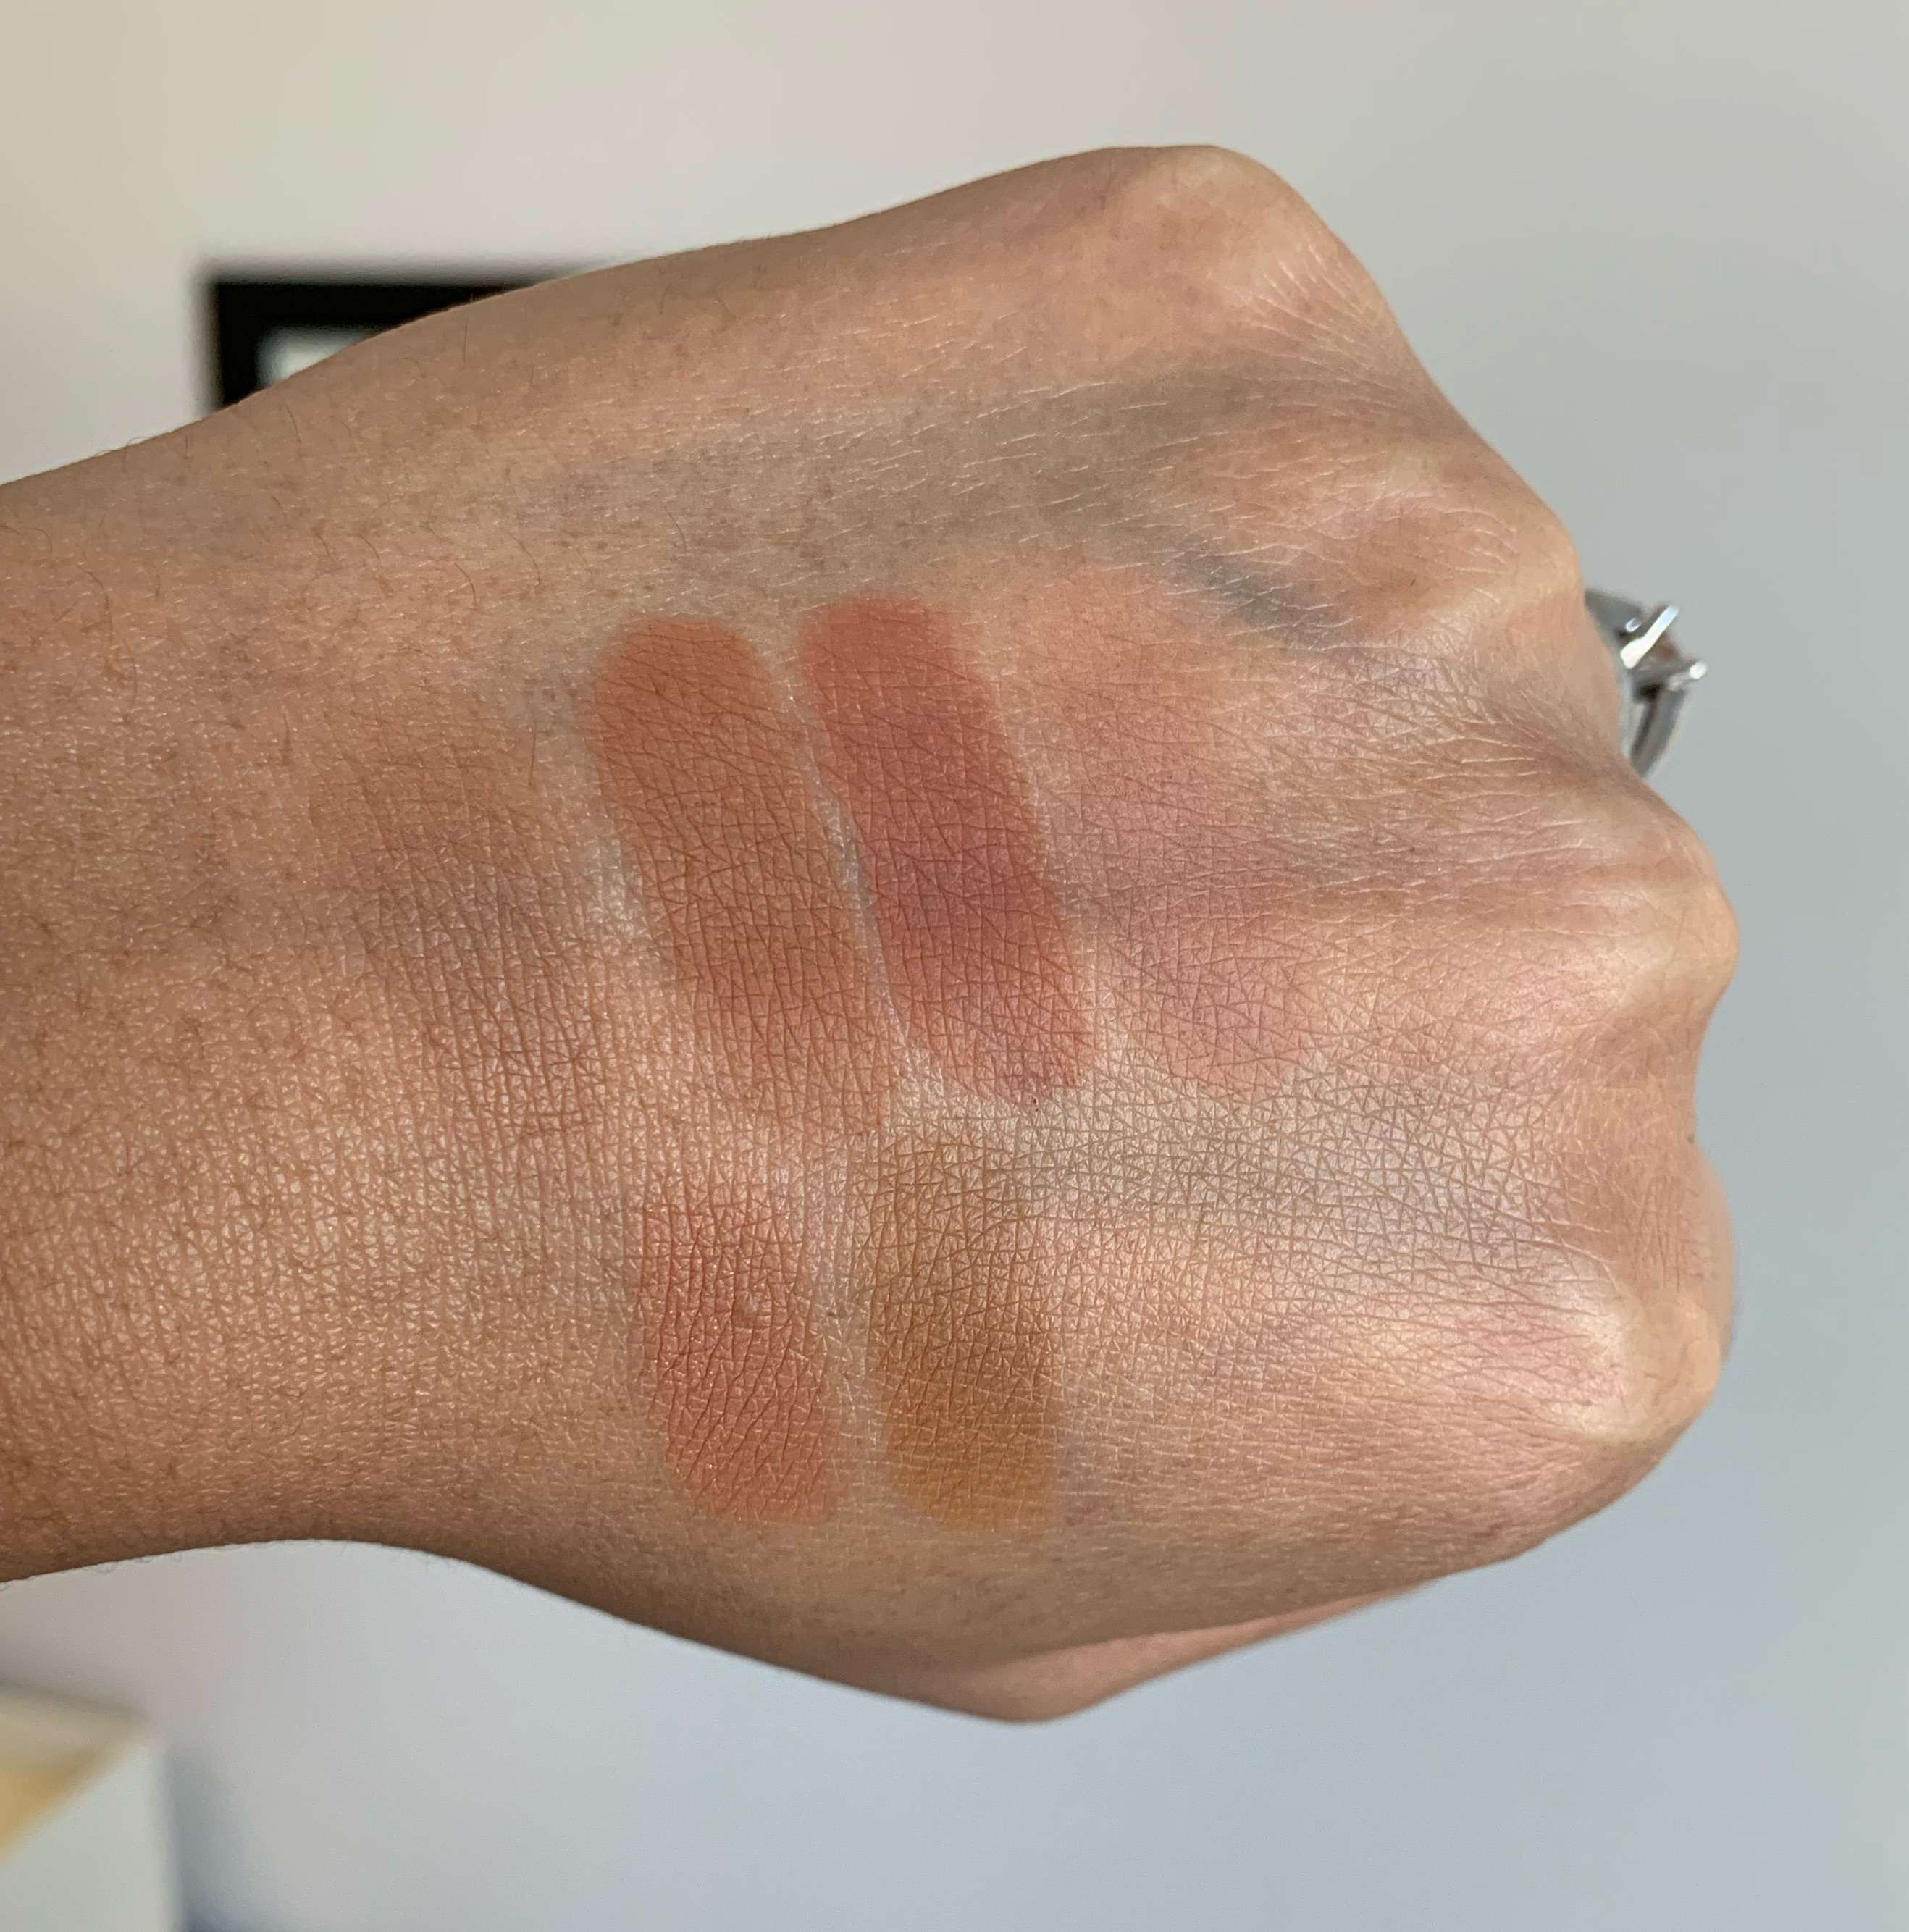 MAC eyeshadow swatches - cork, saddle, brown script, soft brown, texture, uninterrupted dark skin